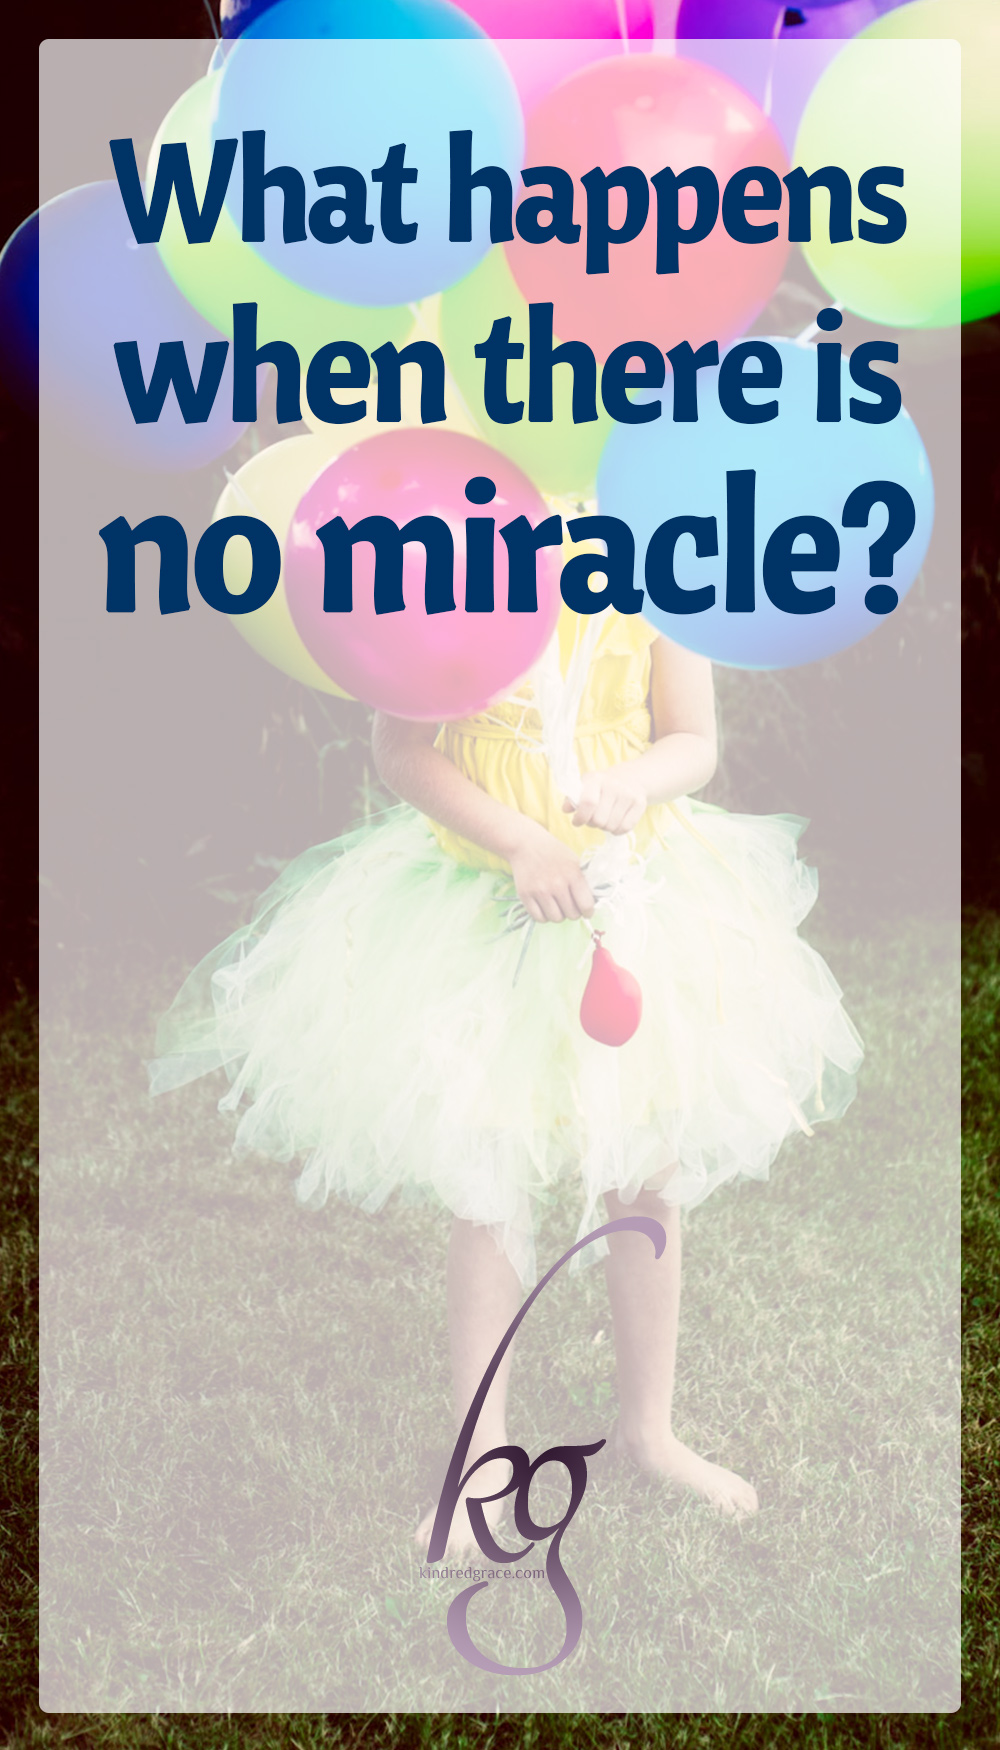 My son was dying and the weight of that reality meant I did everything to keep him alive while praying for a miracle. But what happens when there is no miracle? No immediate healing? No answer in the long darkness? via @KindredGrace